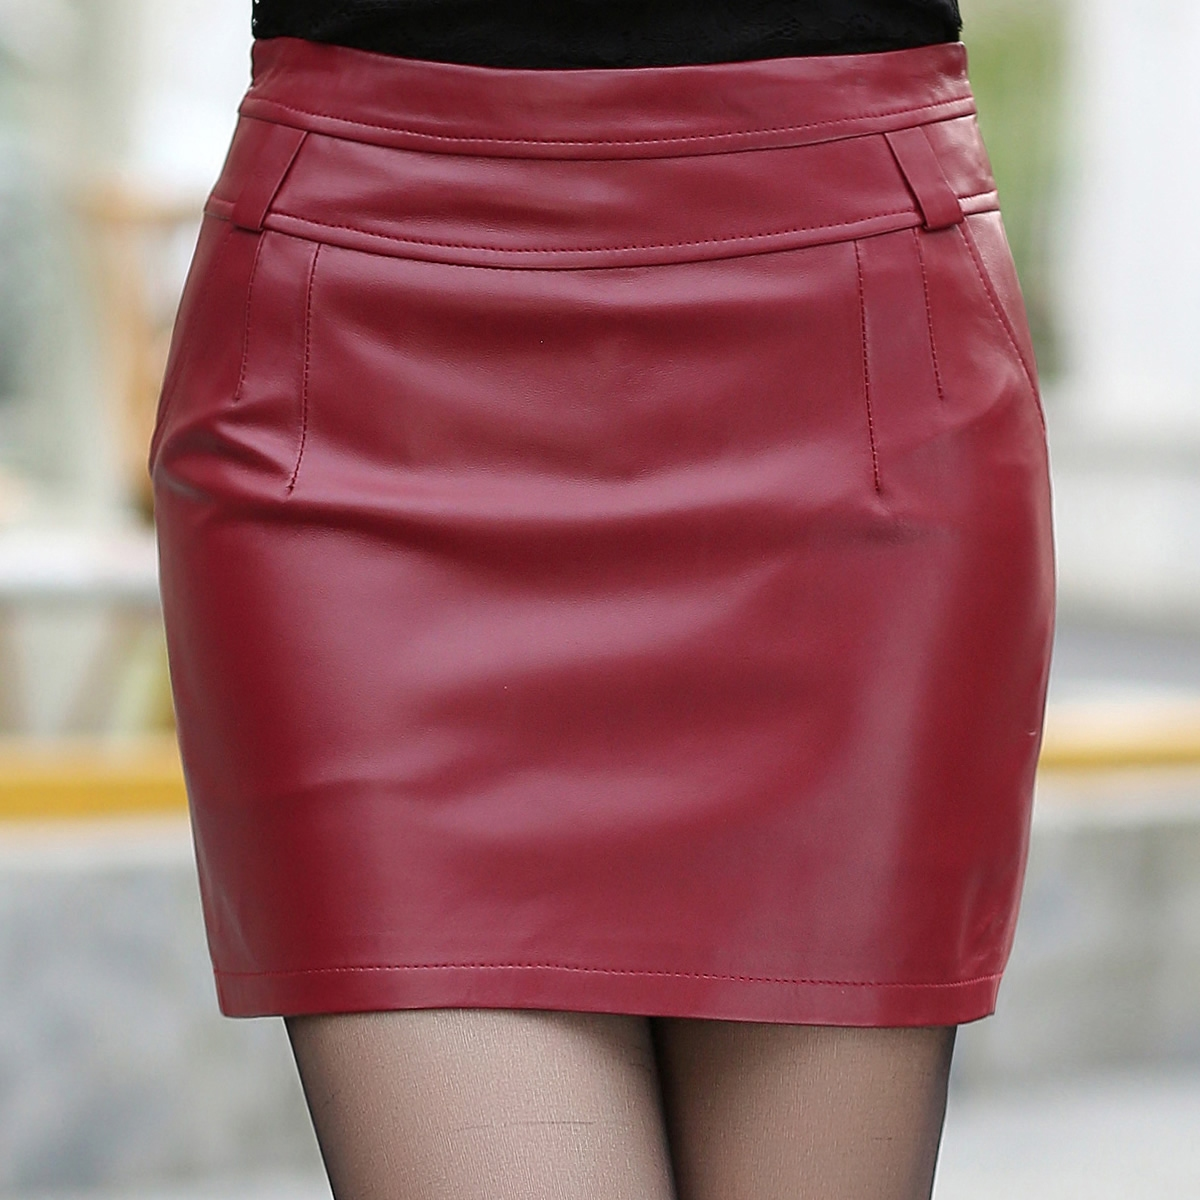 Ding yang yang 2015 new winter haining leather sheep leather skirt leather skirt was thin package hip skirts